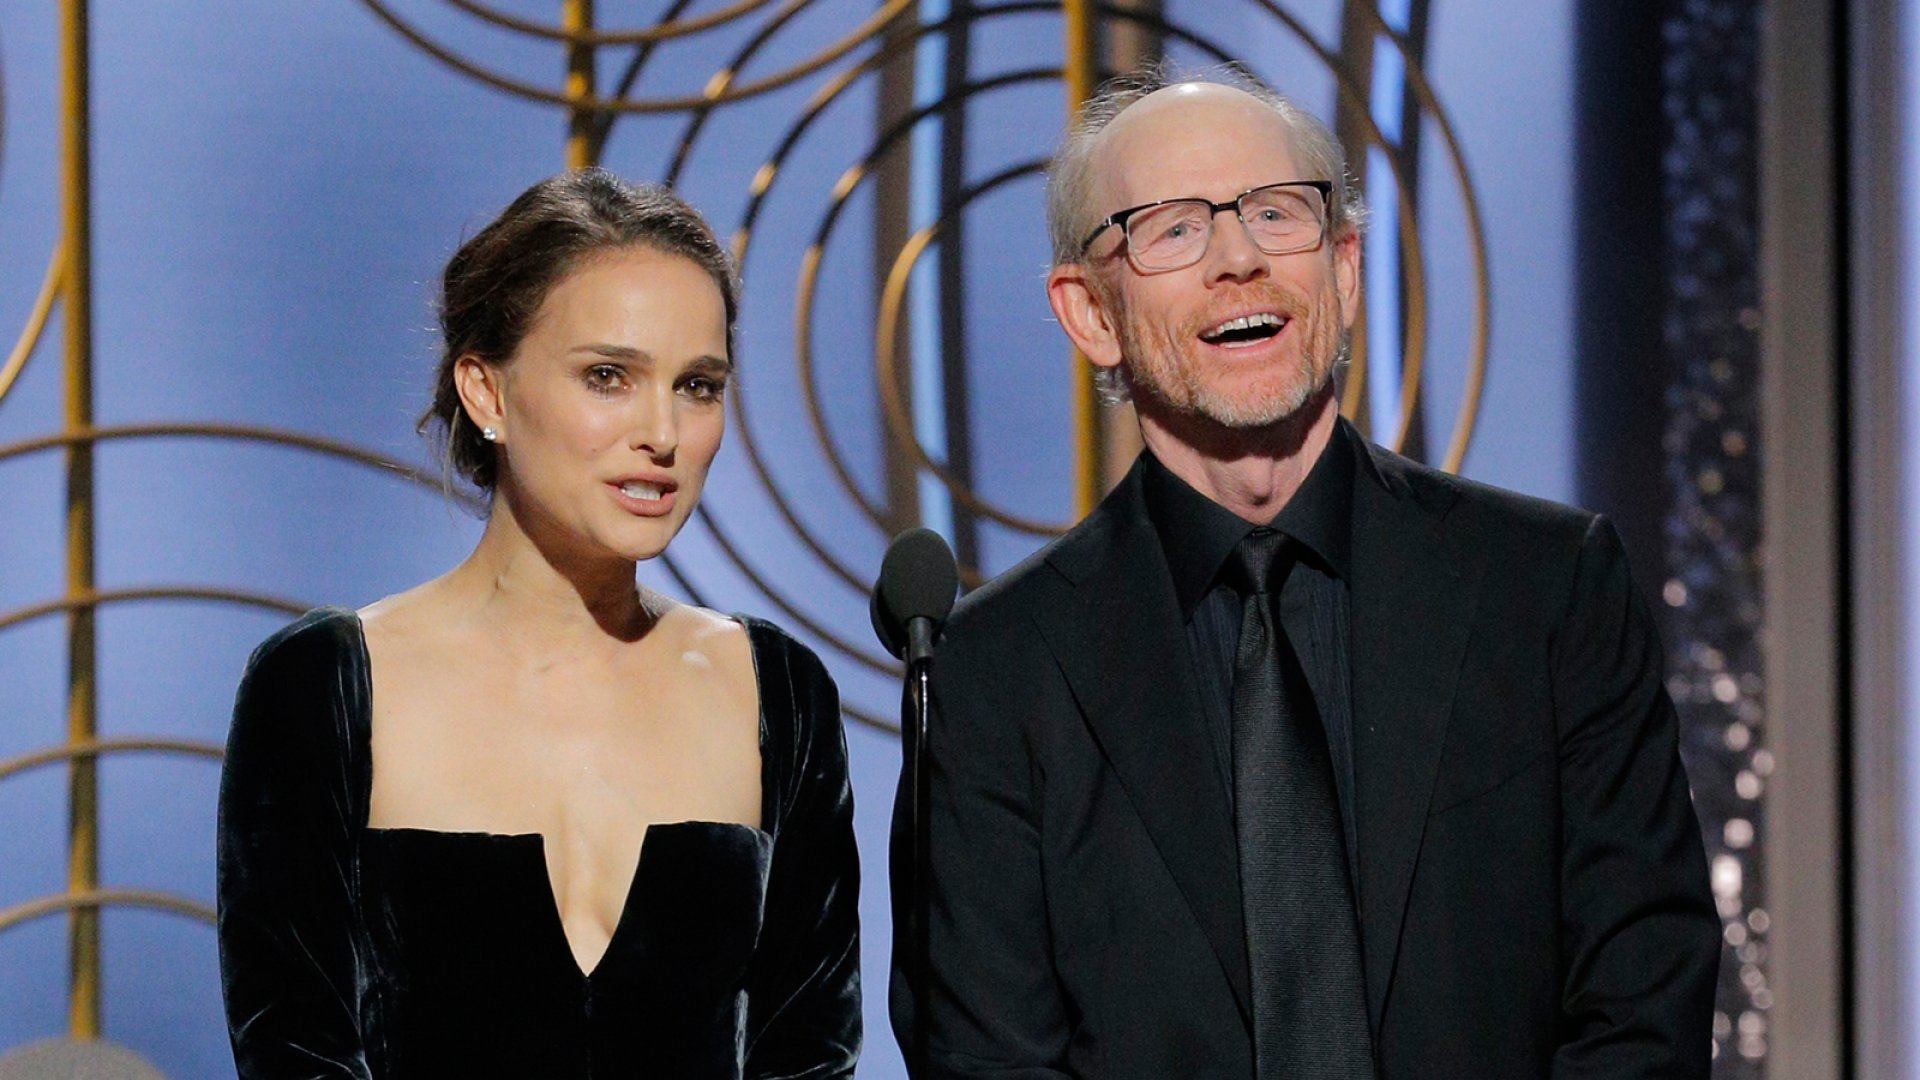 Presenters Natalie Portman and Ron Howard speak onstage during the 75th Annual Golden Globe Awards.